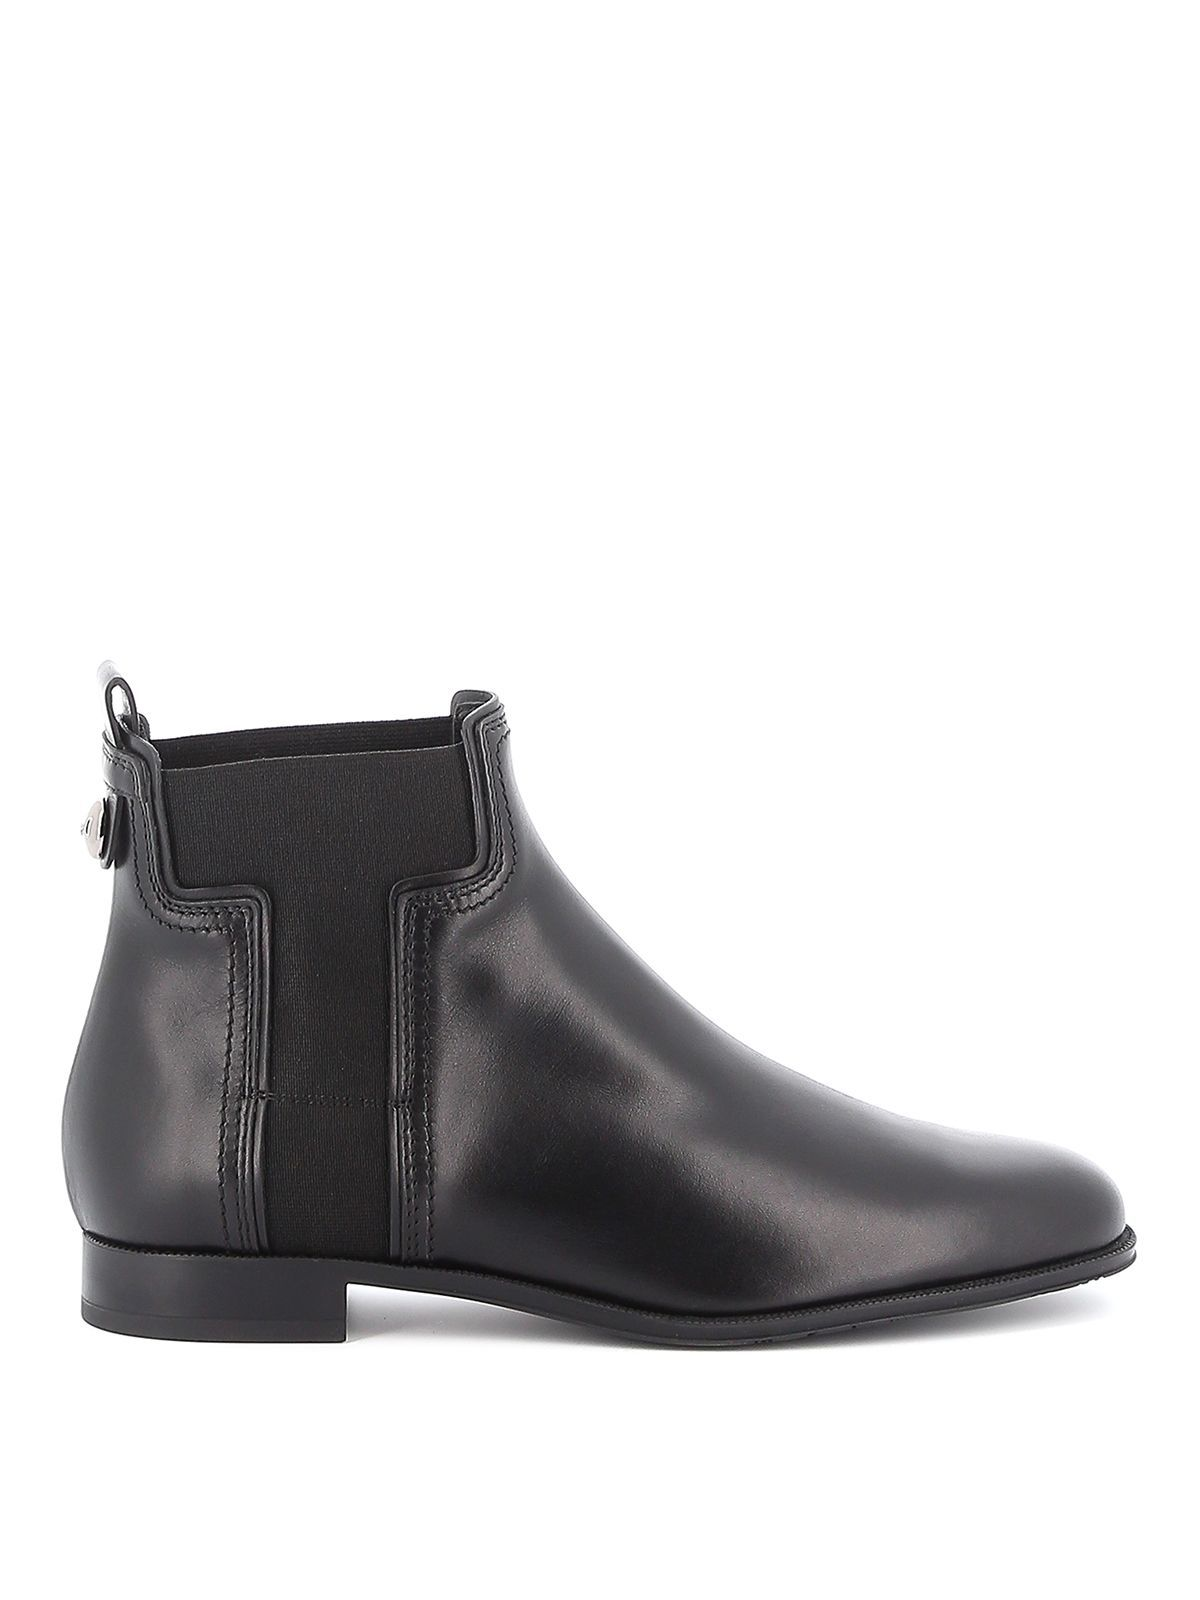 TOD'S WOMEN'S XXW73B0BR70GOCB999 BLACK LEATHER ANKLE BOOTS